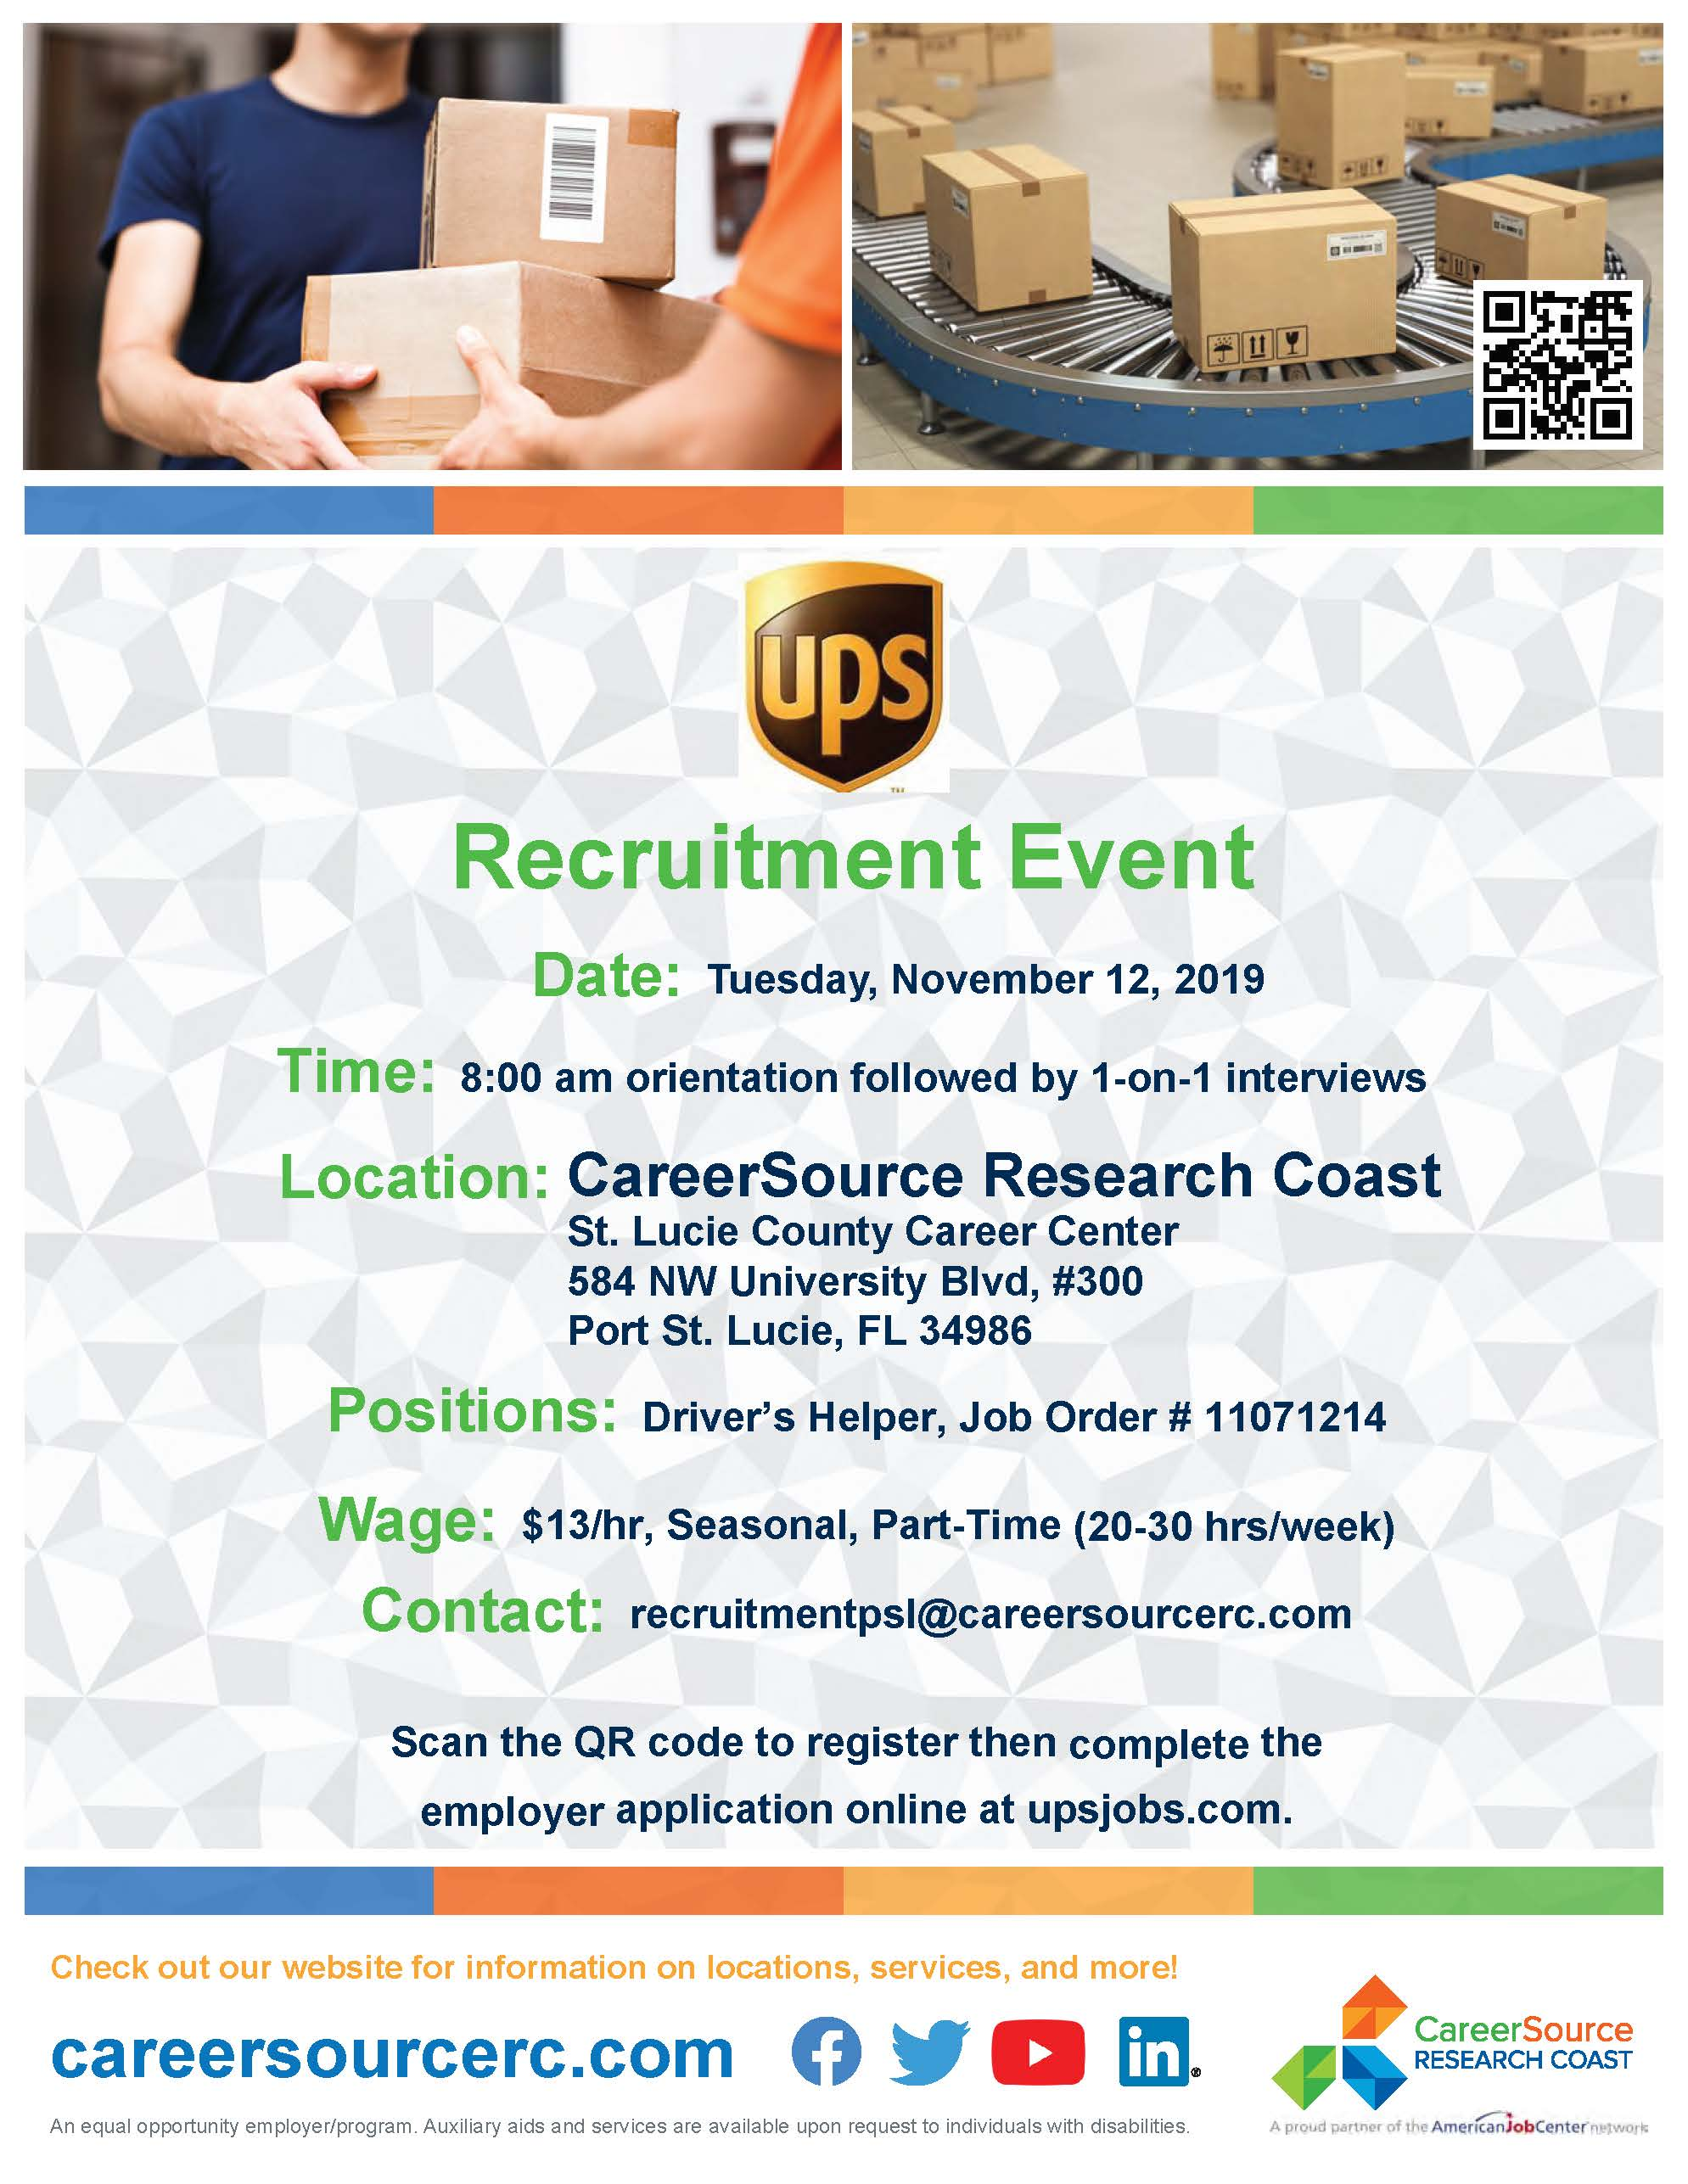 UPS Recruitment Event - CareerSource Research Coast